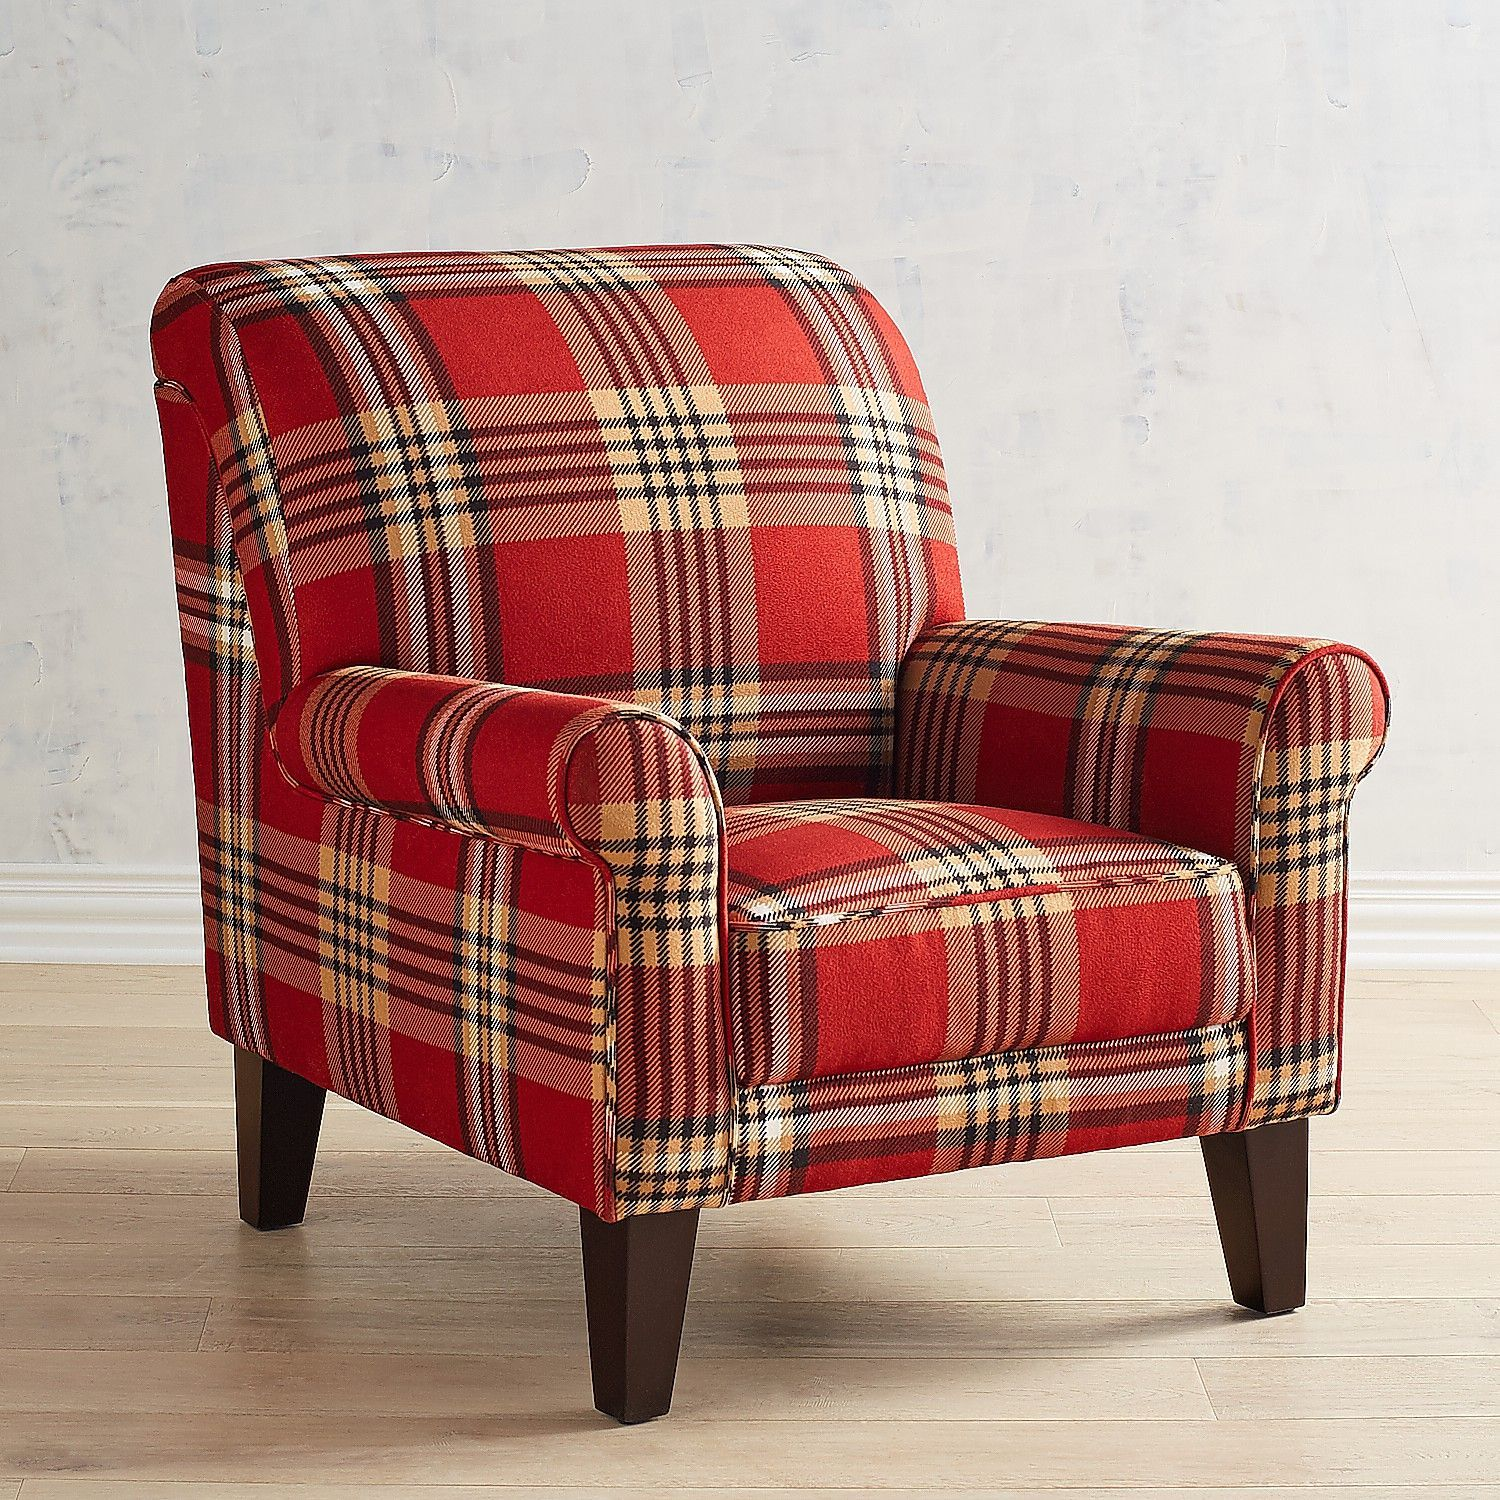 Lyndee Red Plaid Armchair French Country Living Room Home Decor Furniture #plaid #chairs #living #room